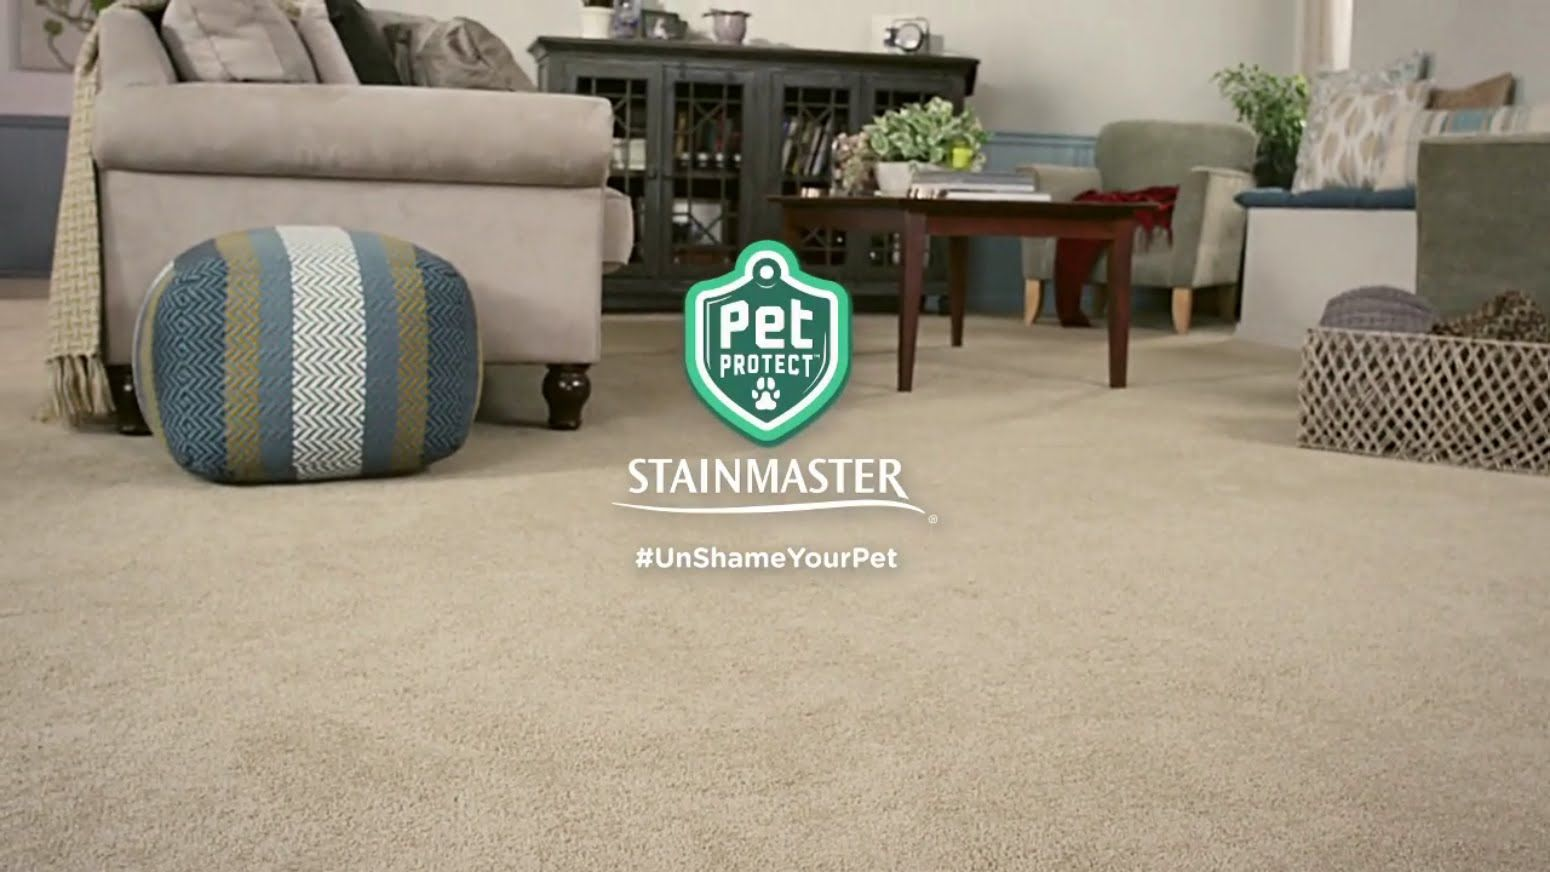 UnShameYourPet with Stainmaster's Pet Protect Carpet